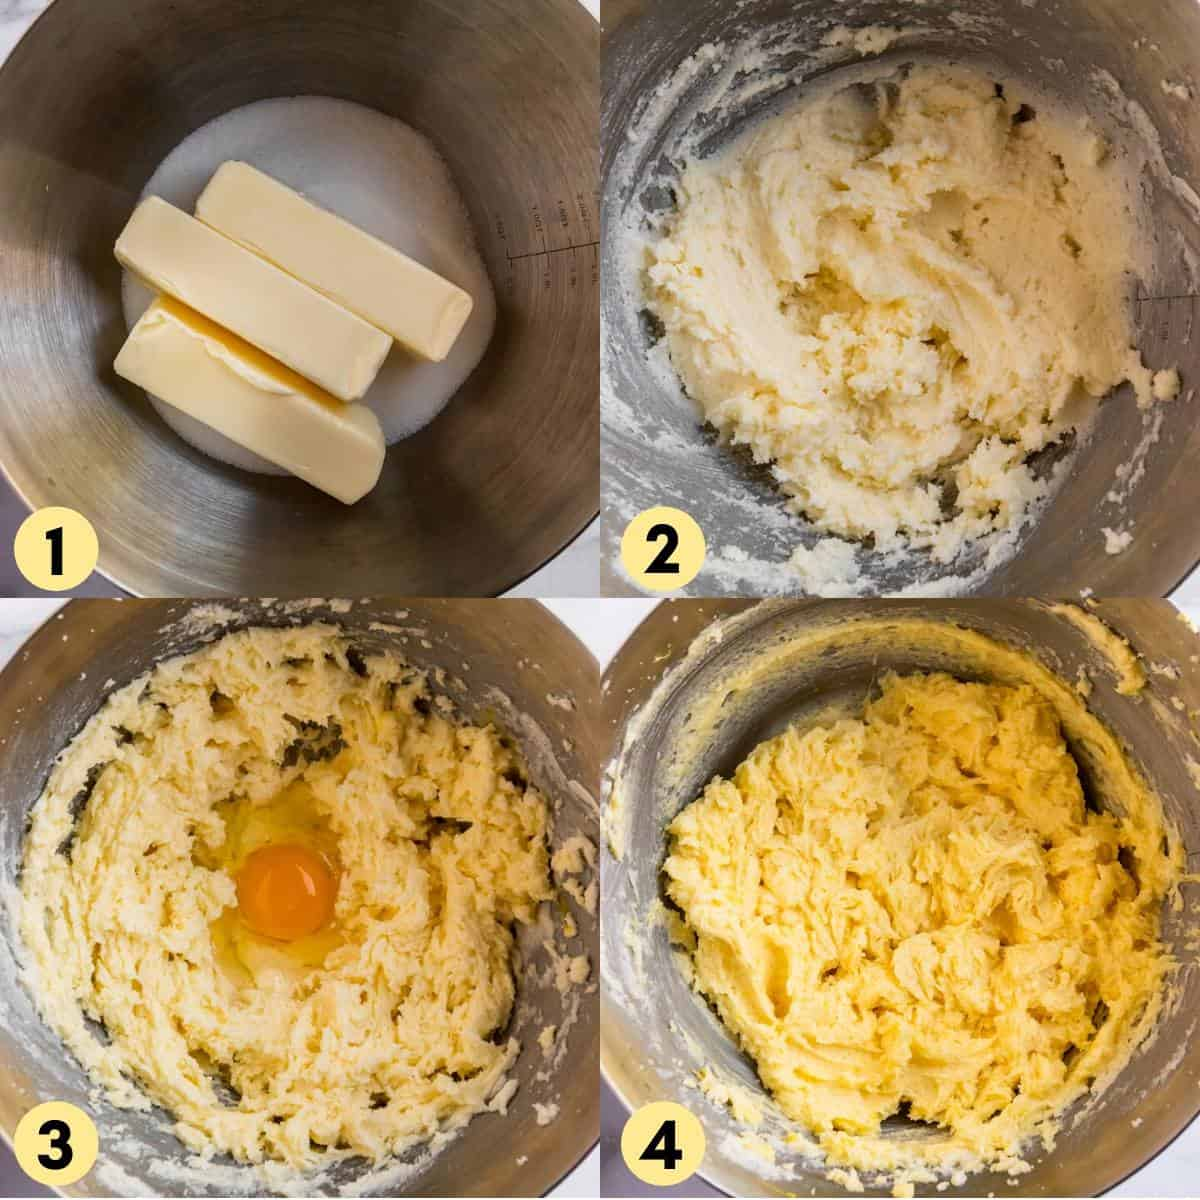 Butter and sugar creamed in bowl with egg added in.